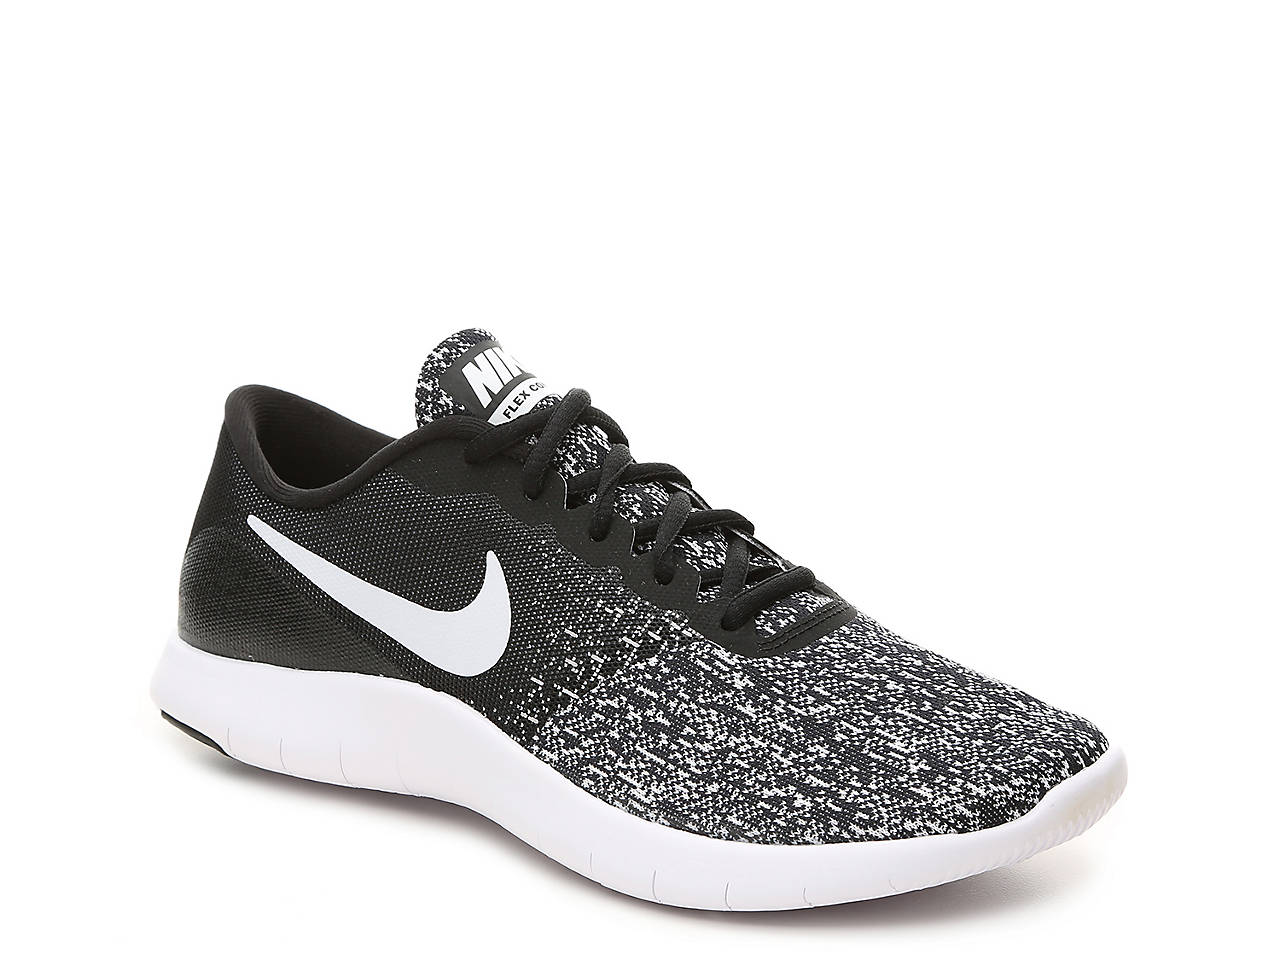 buy popular bd5d3 72940 Nike. Flex Contact Lightweight Running Shoe - Women s